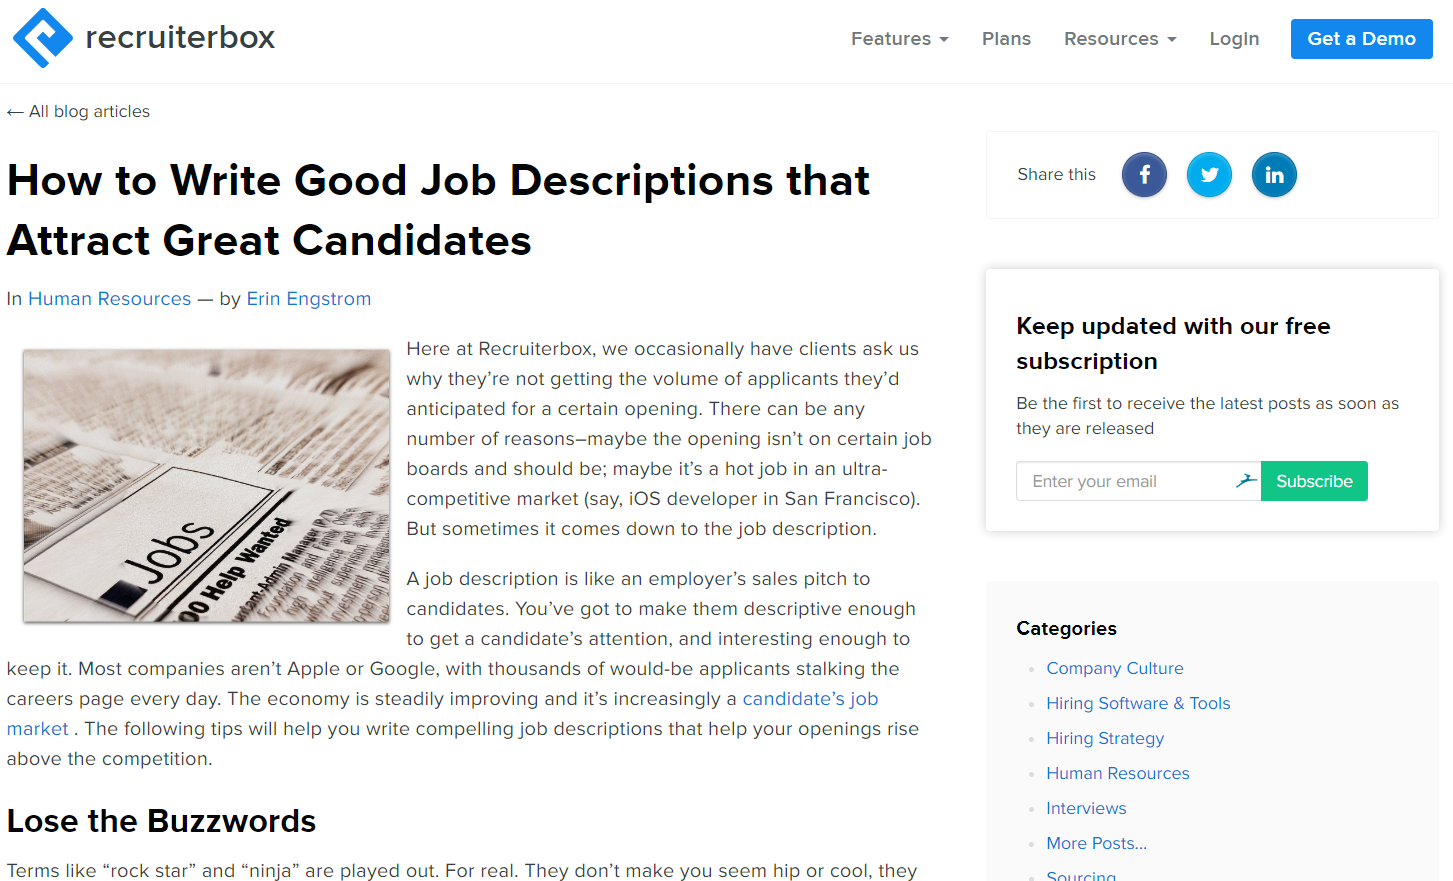 Top employer branding article: How to Write Good Job Descriptions